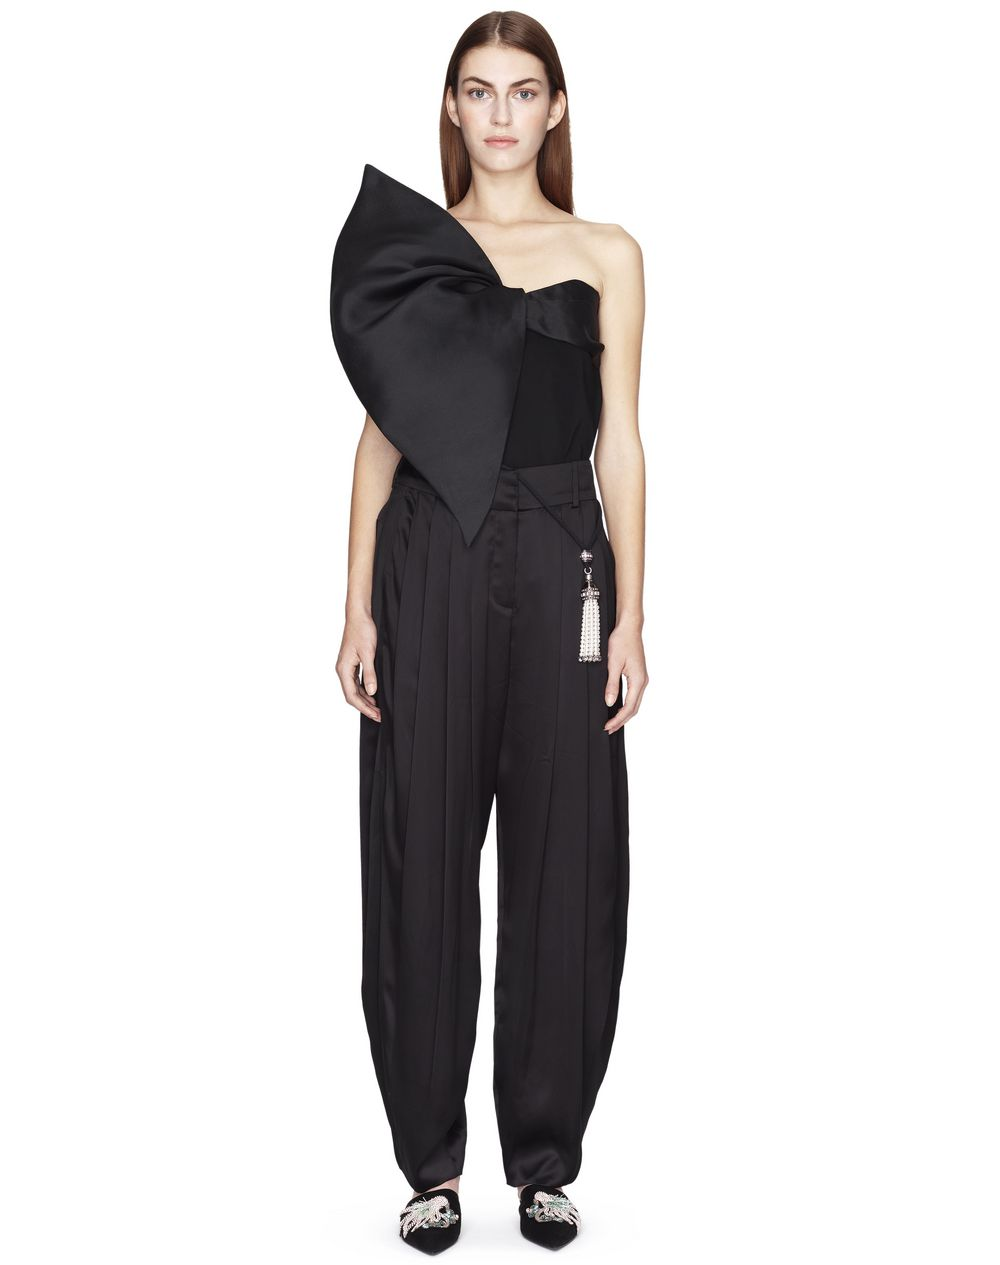 SATIN SAROUEL TROUSERS - Lanvin